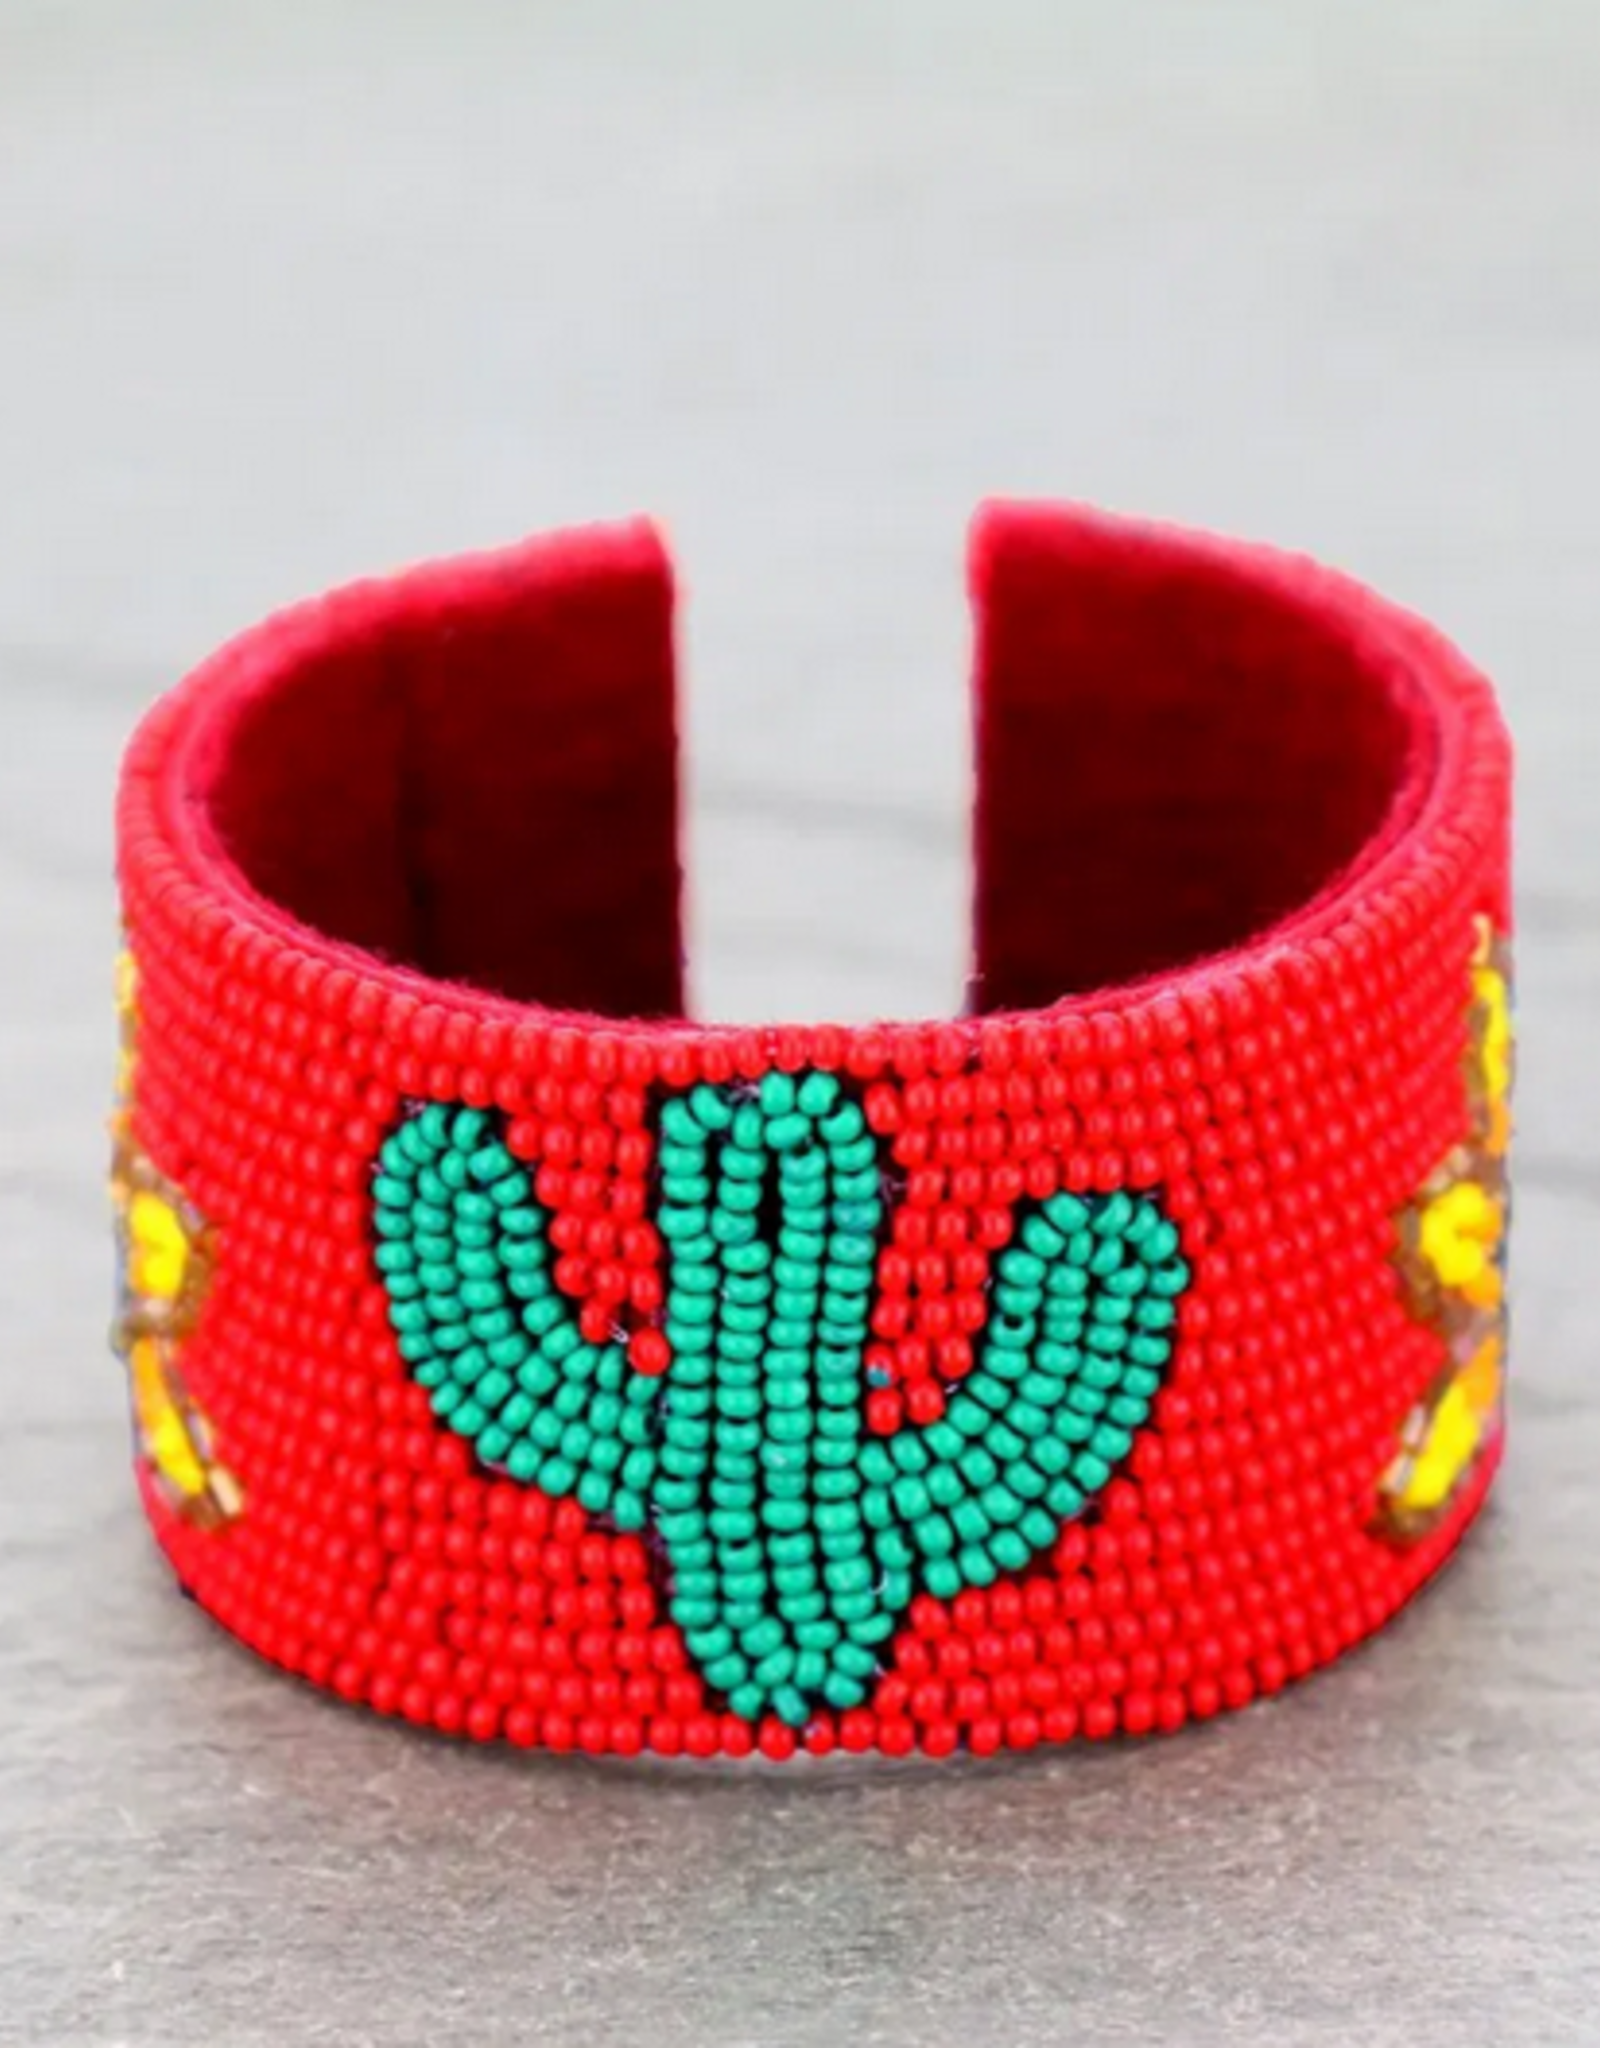 BRACELET CACTUS AND SUNFLOWER SEED BEAD CUFF